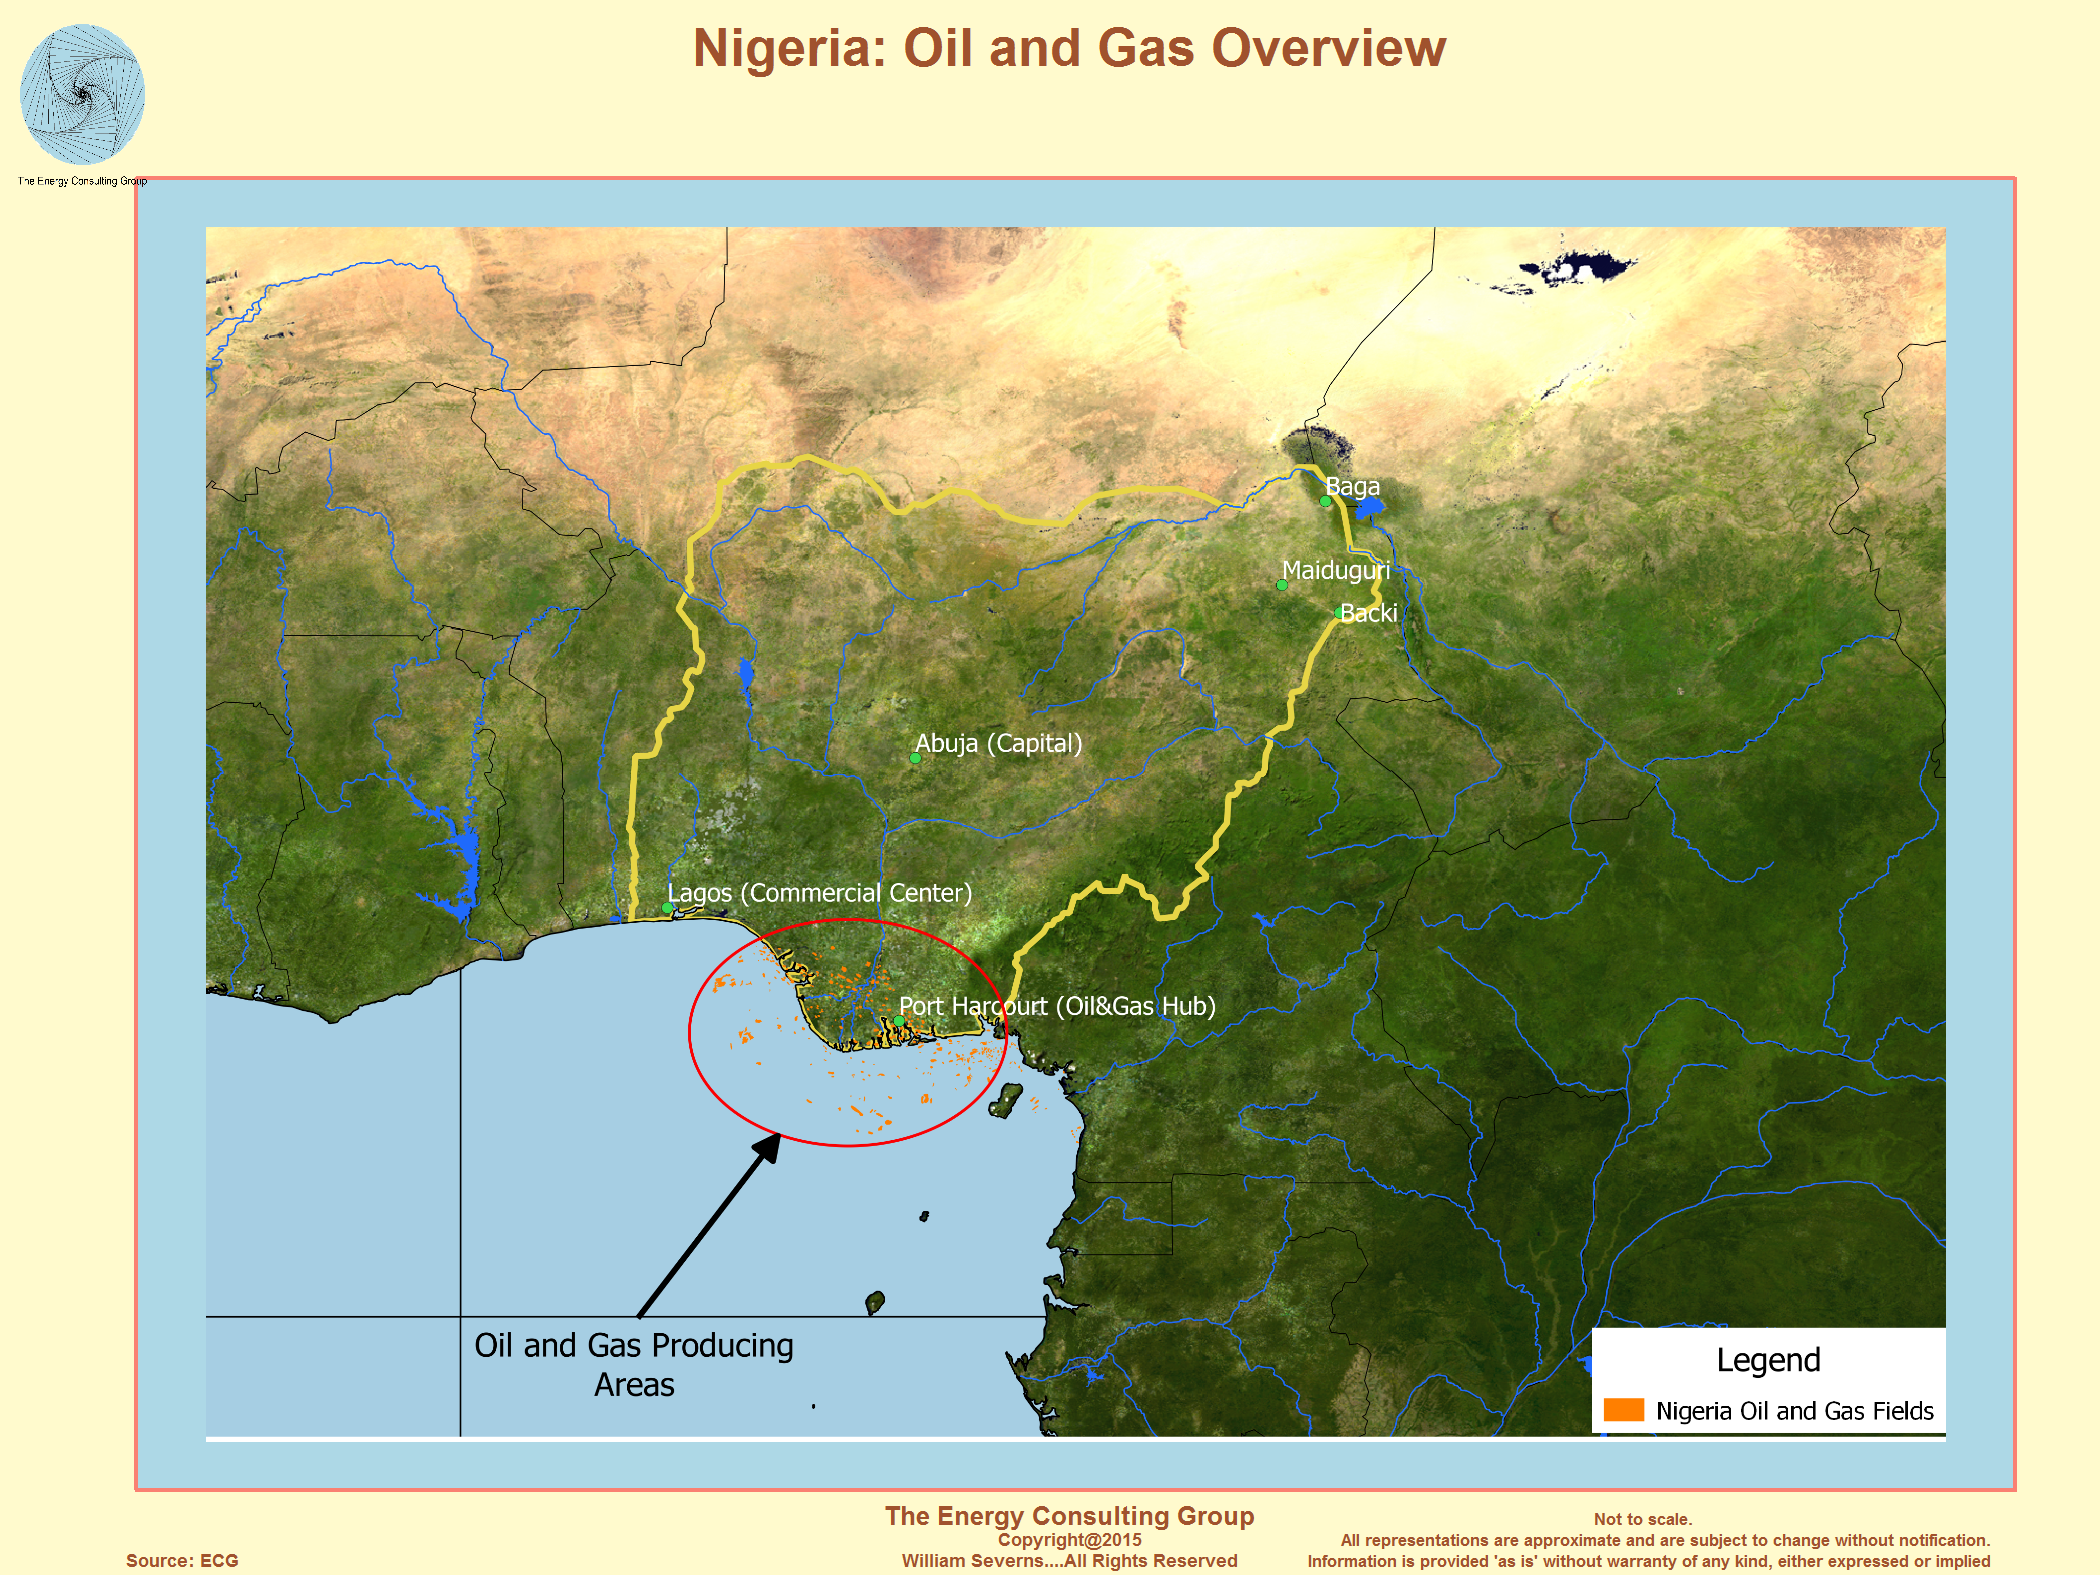 an overview of nigeria Updated: march 2015 nigeria energy sector overview nigeria's energy sector has been undergoing a massive transformation in recent years as the government actively.